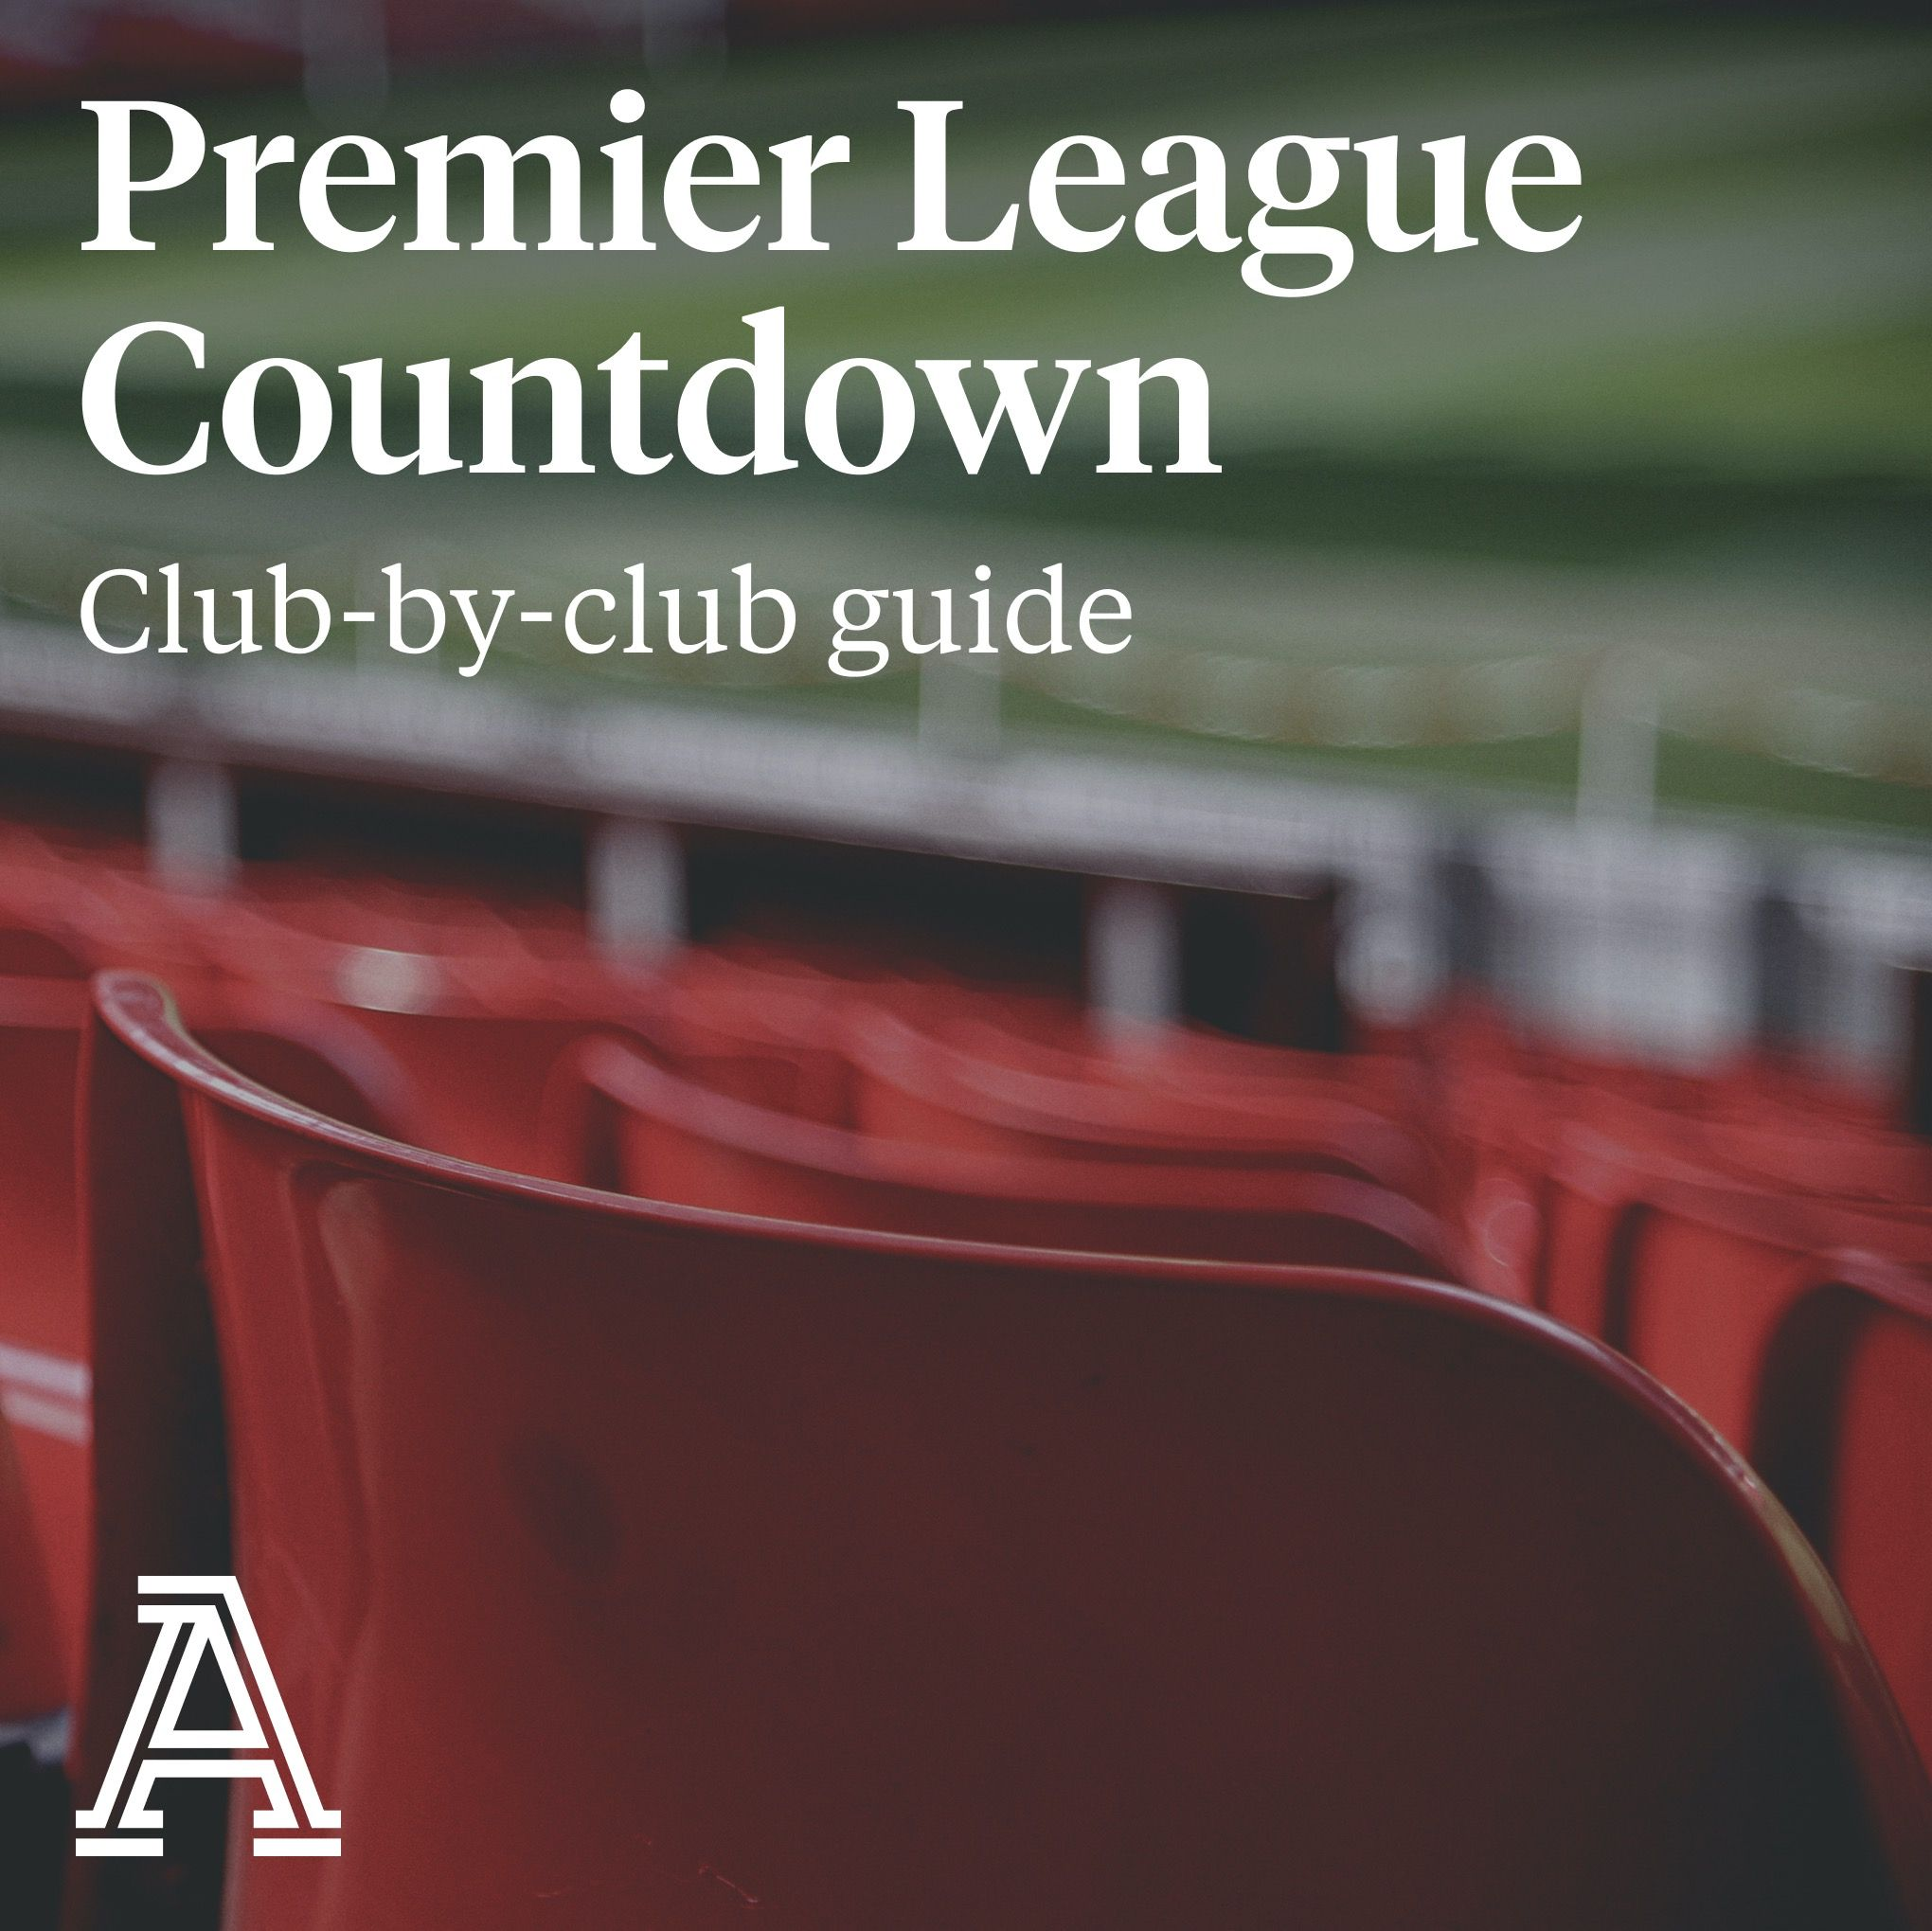 Premier League Countdown - Newcastle